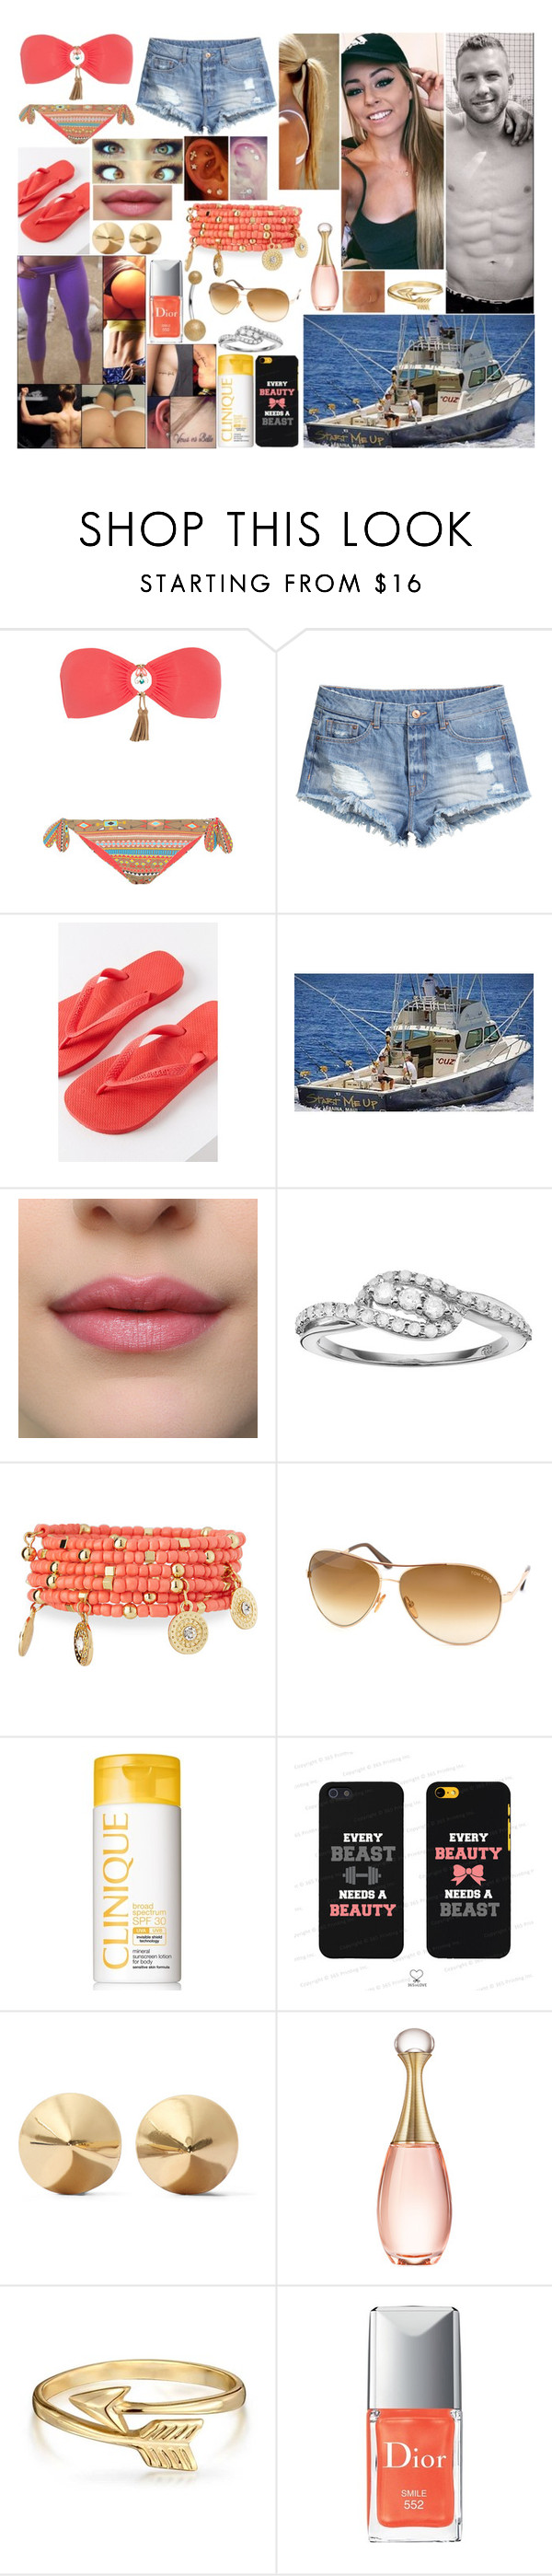 """""""Hawaii Day 6: Sport Fishing"""" by queennikkiufc ❤ liked on Polyvore featuring Emamò, H&M, Havaianas, Emily & Ashley, Tom Ford, Clinique, Samsung, Eddie Borgo, Christian Dior and Bling Jewelry"""